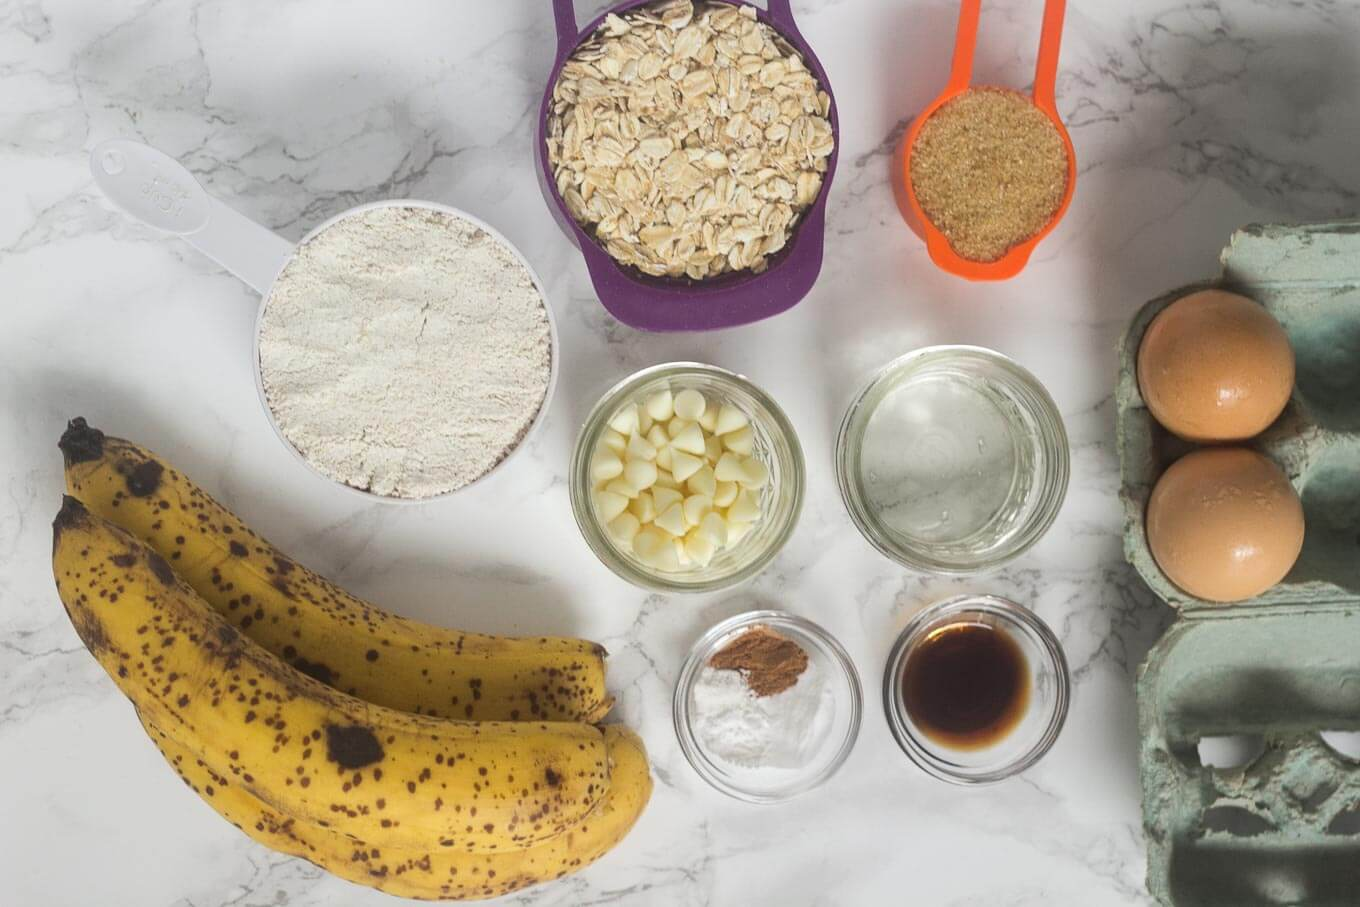 Banana Oat Bread - Ingredients